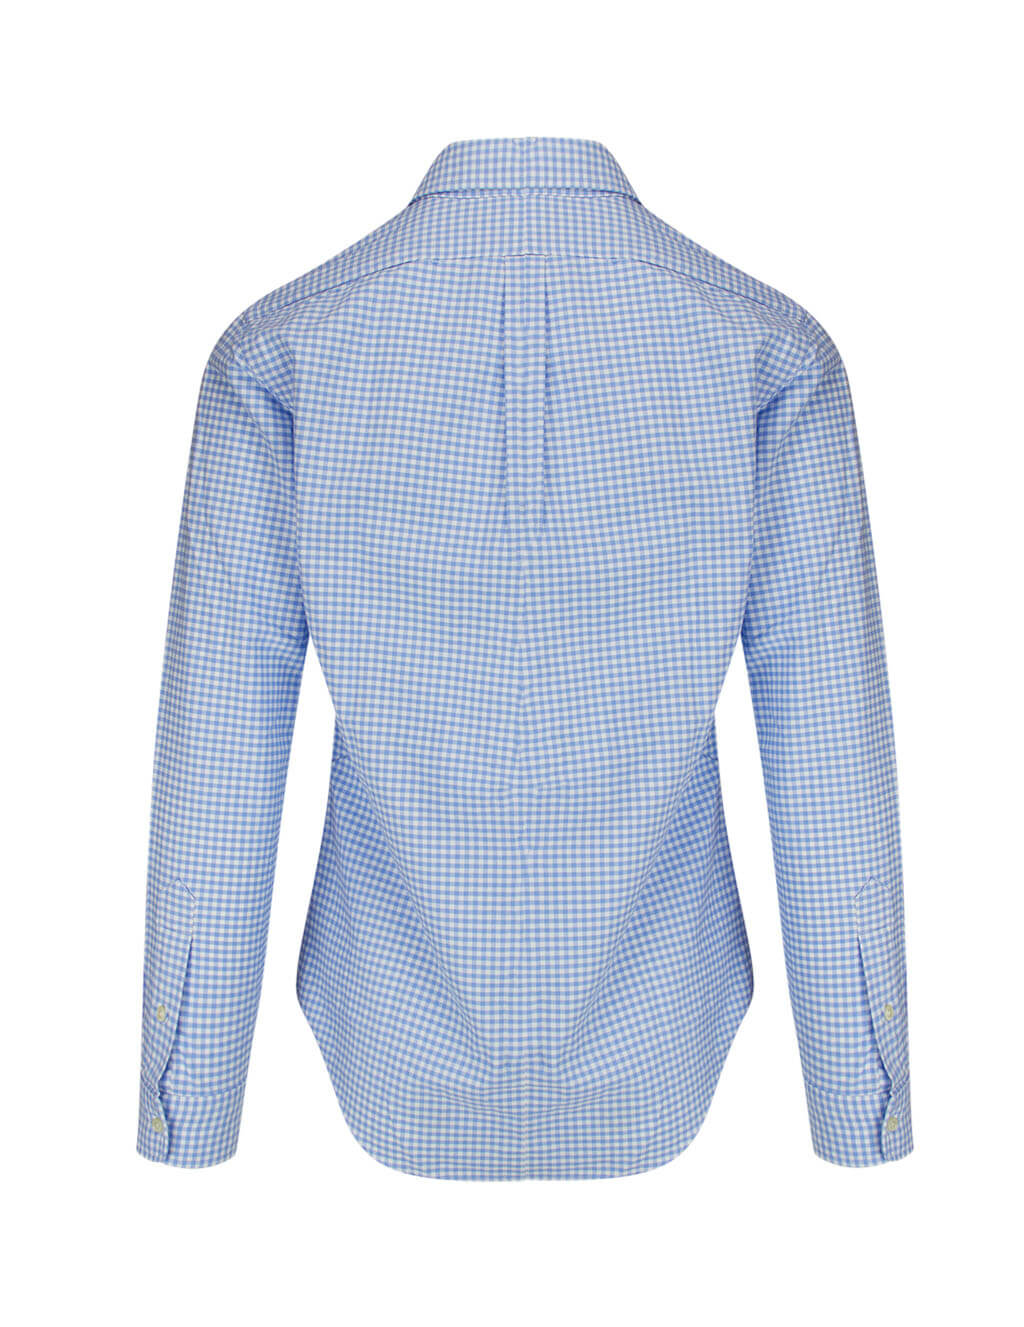 Polo Ralph Lauren Men's Light Blue Checked Sport Shirt 710794612005